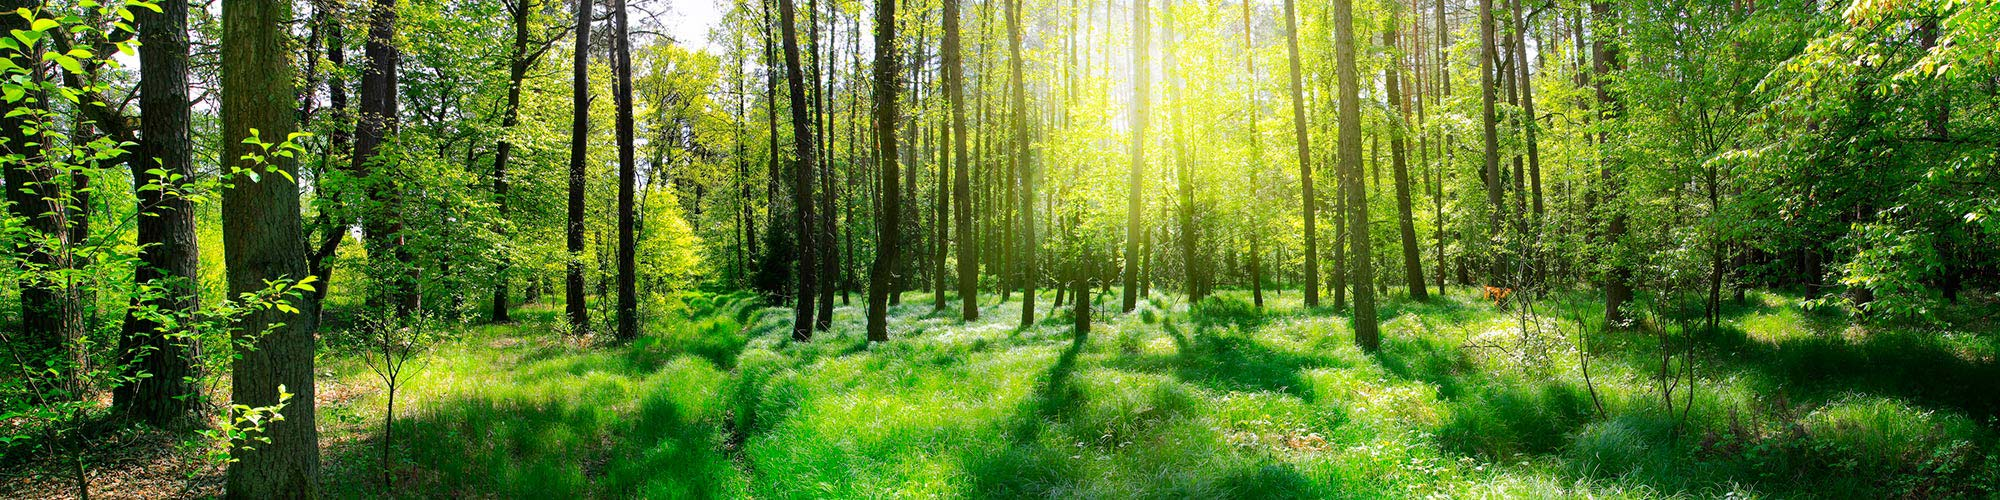 sunshine through woodland trees